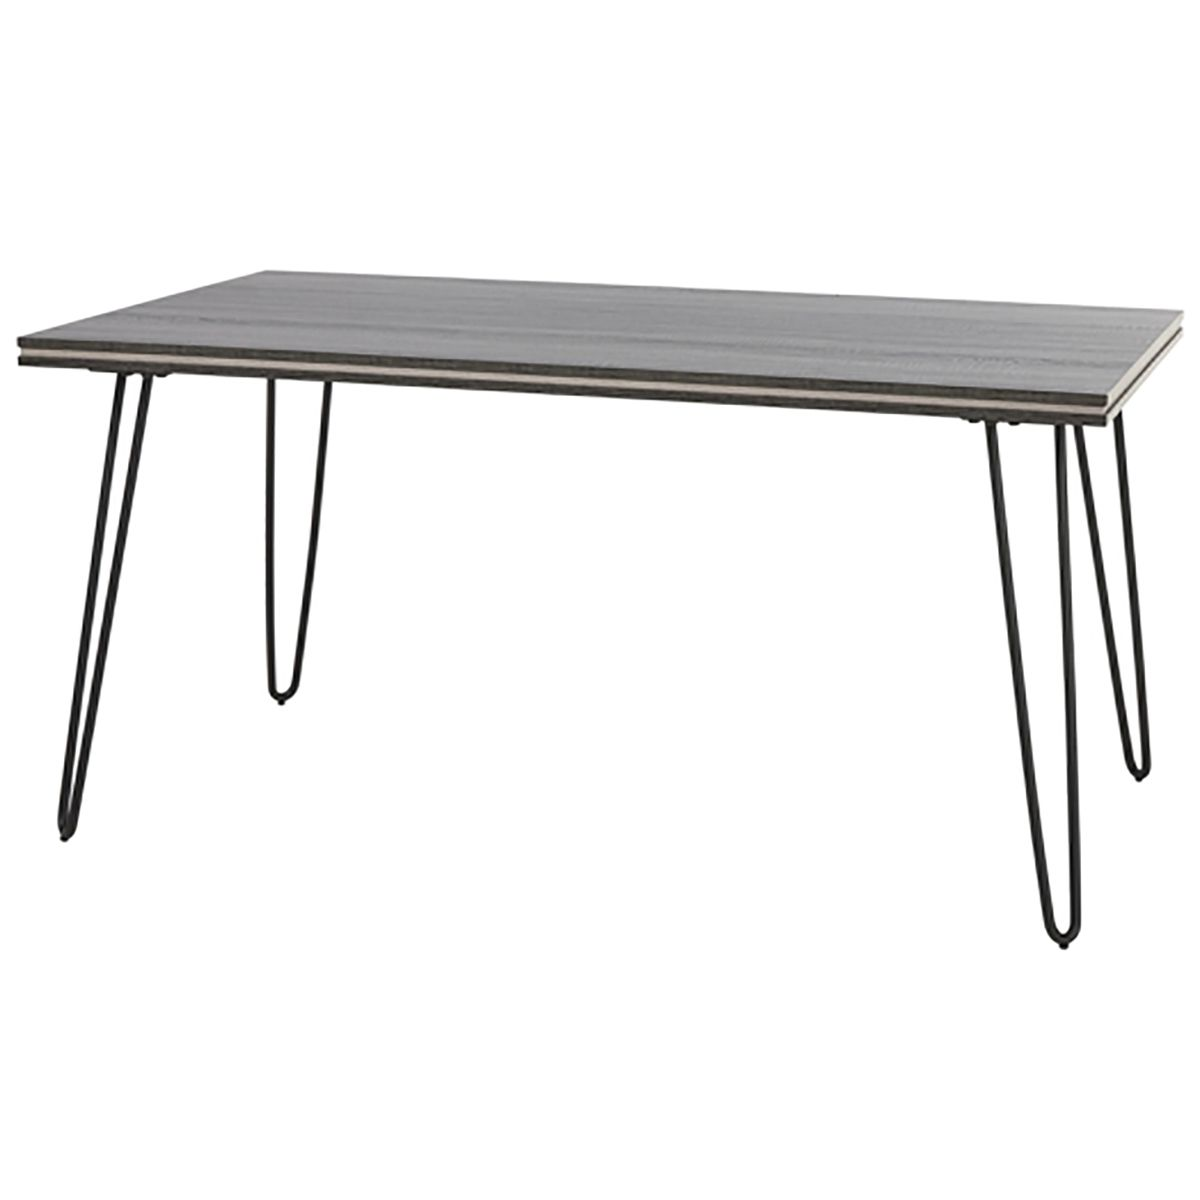 maison du monde Table Rectangulaire 160cm